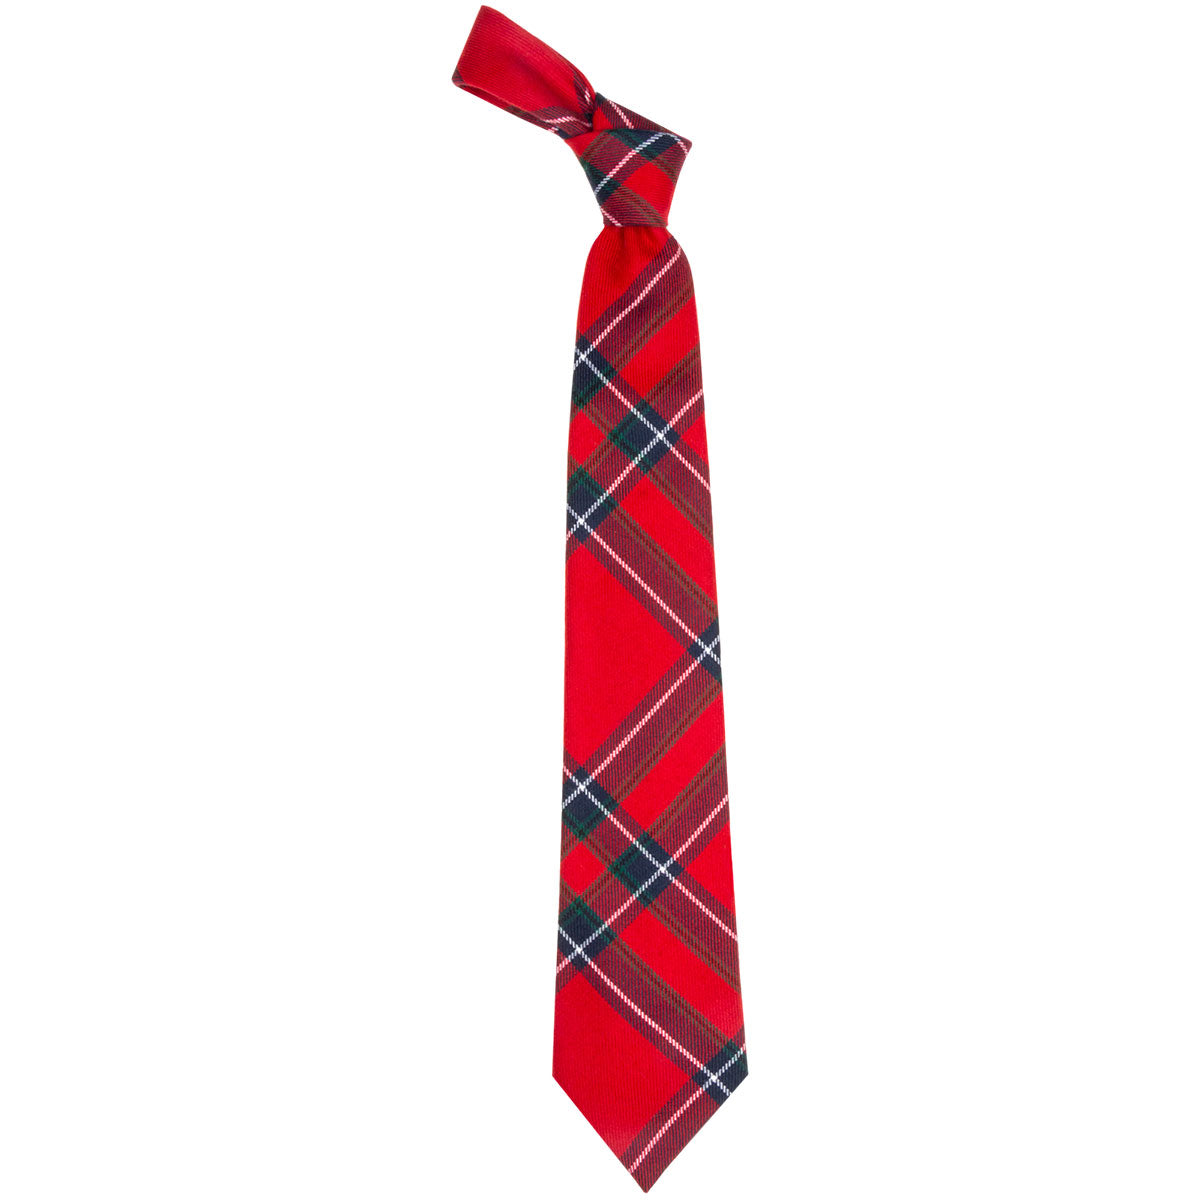 Inverness Modern Tartan Tie from Anderson Kilts